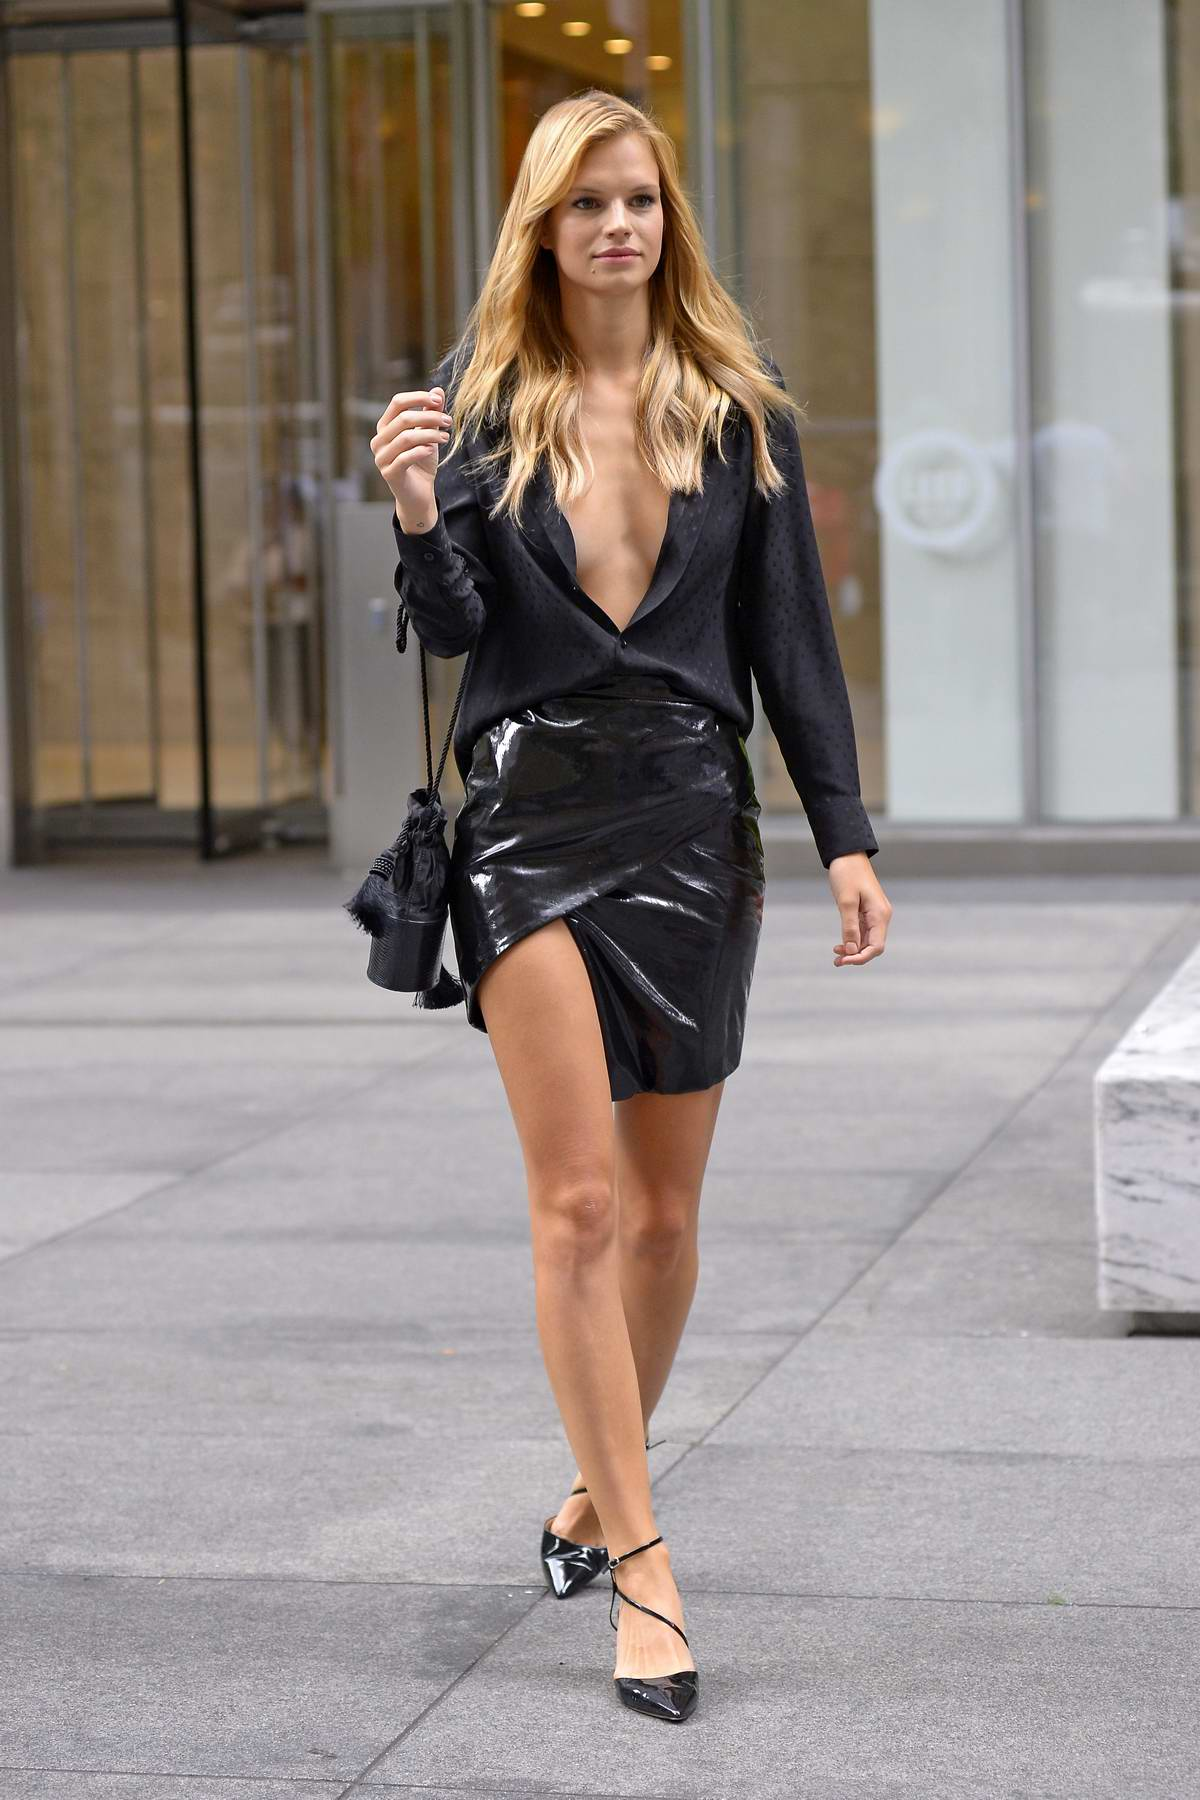 Nadine Leopold wears an unbuttoned black shirt and PVC mini skirt while promoting 'Model Squad' at SiriusXM in New York City